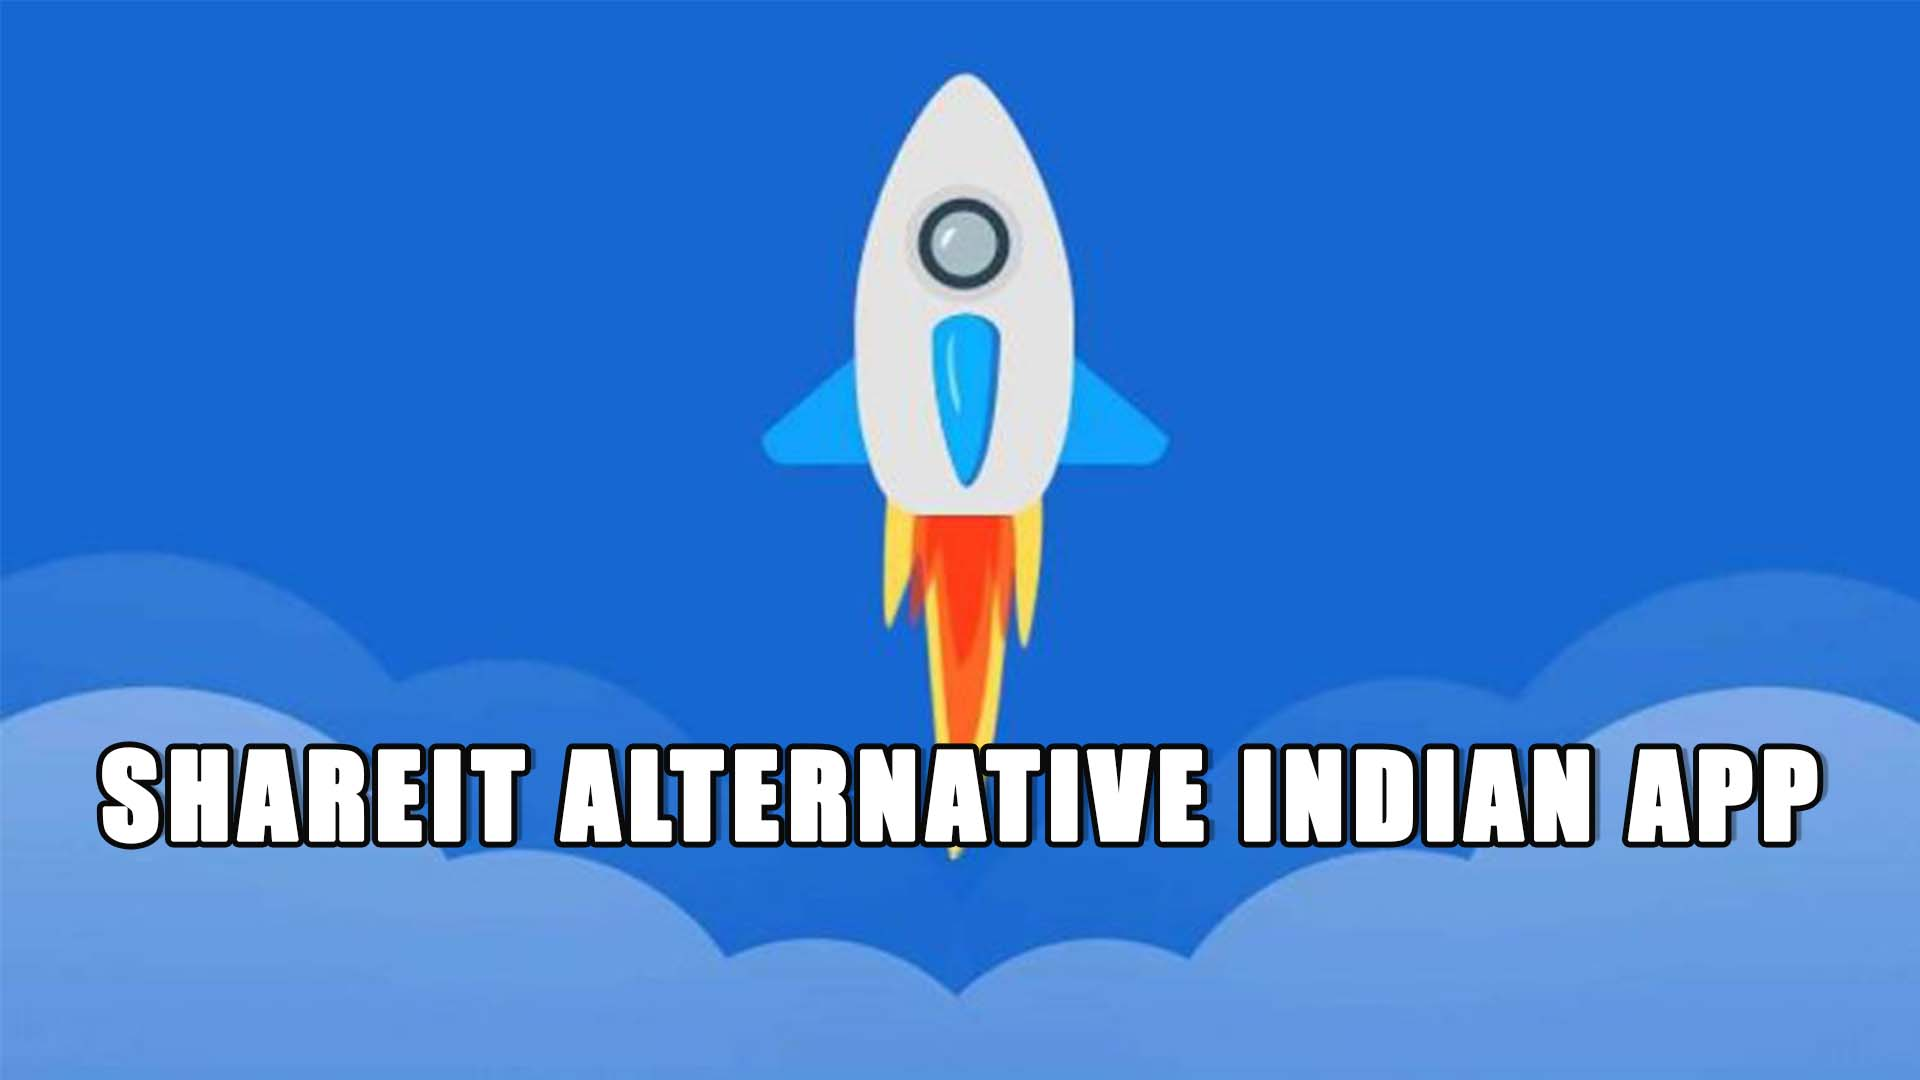 Don't Use SHAREit! 4 Best shareit alternative indian app for Android and iOS